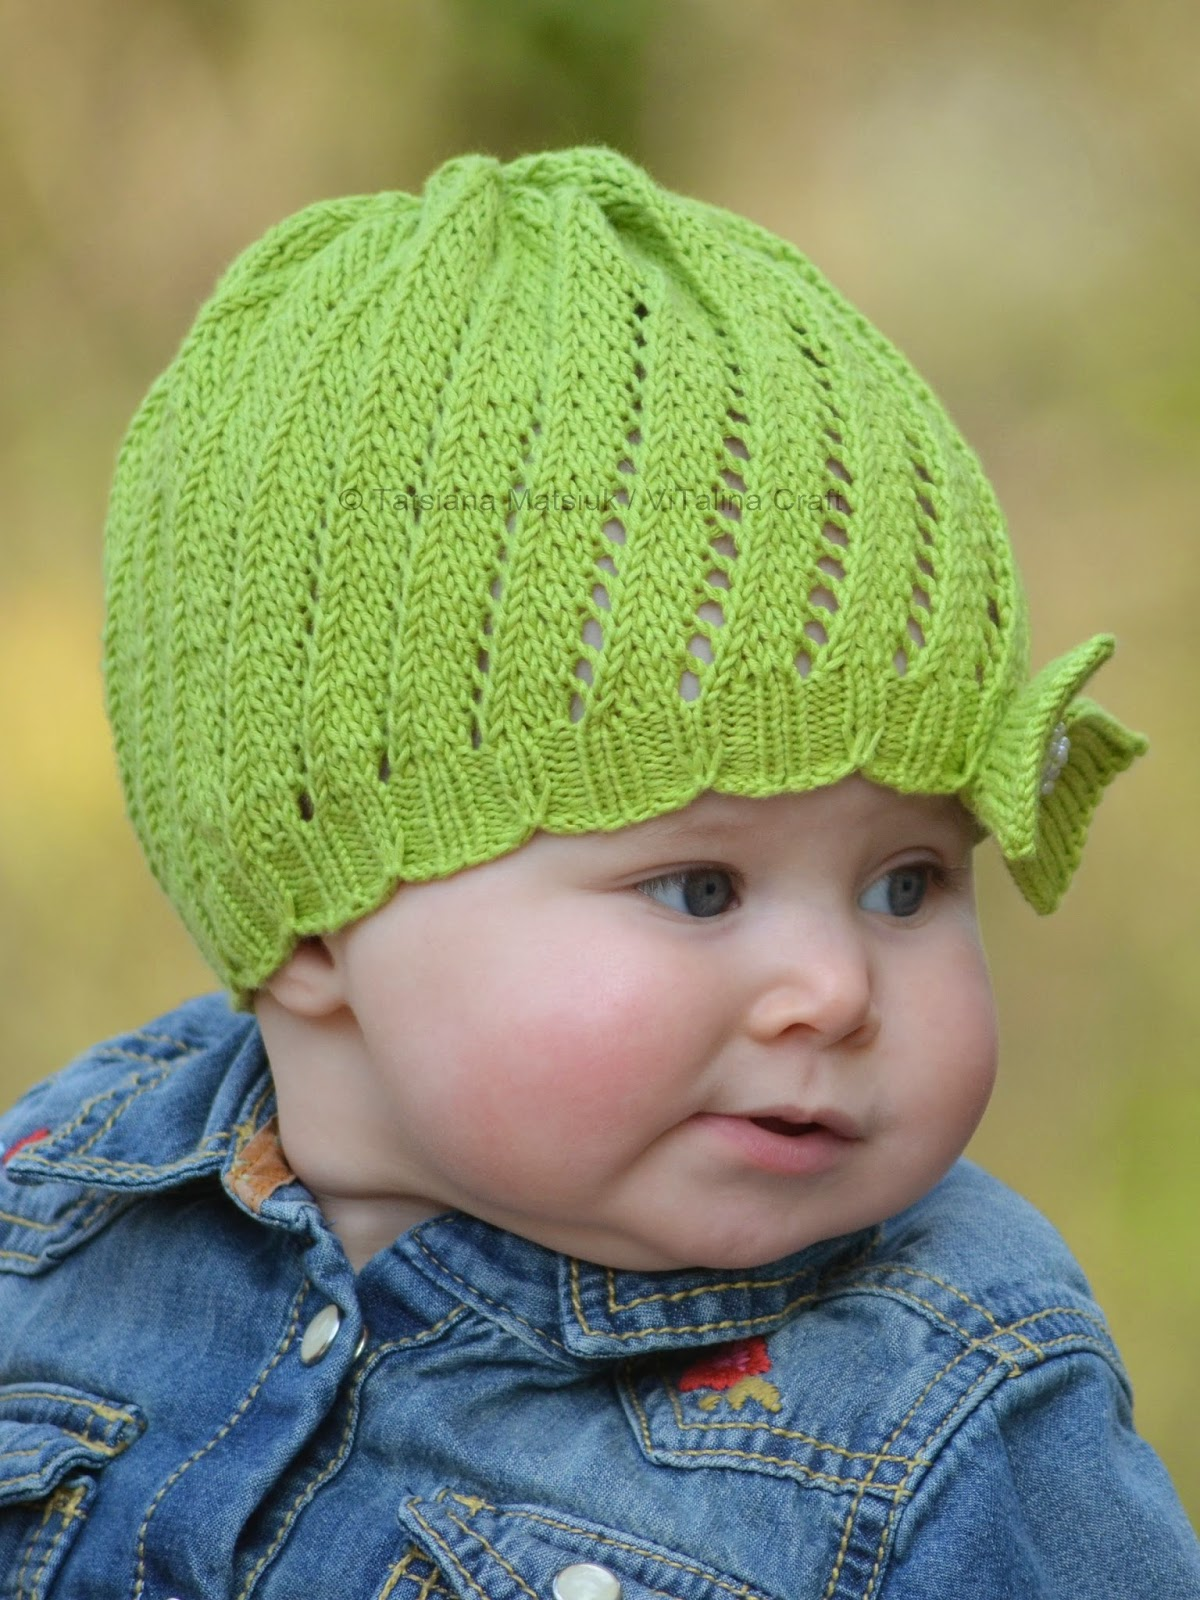 Knitting Patterns Cotton Yarn : Spinning Waves Hat Knitting Pattern ViTalina Craft